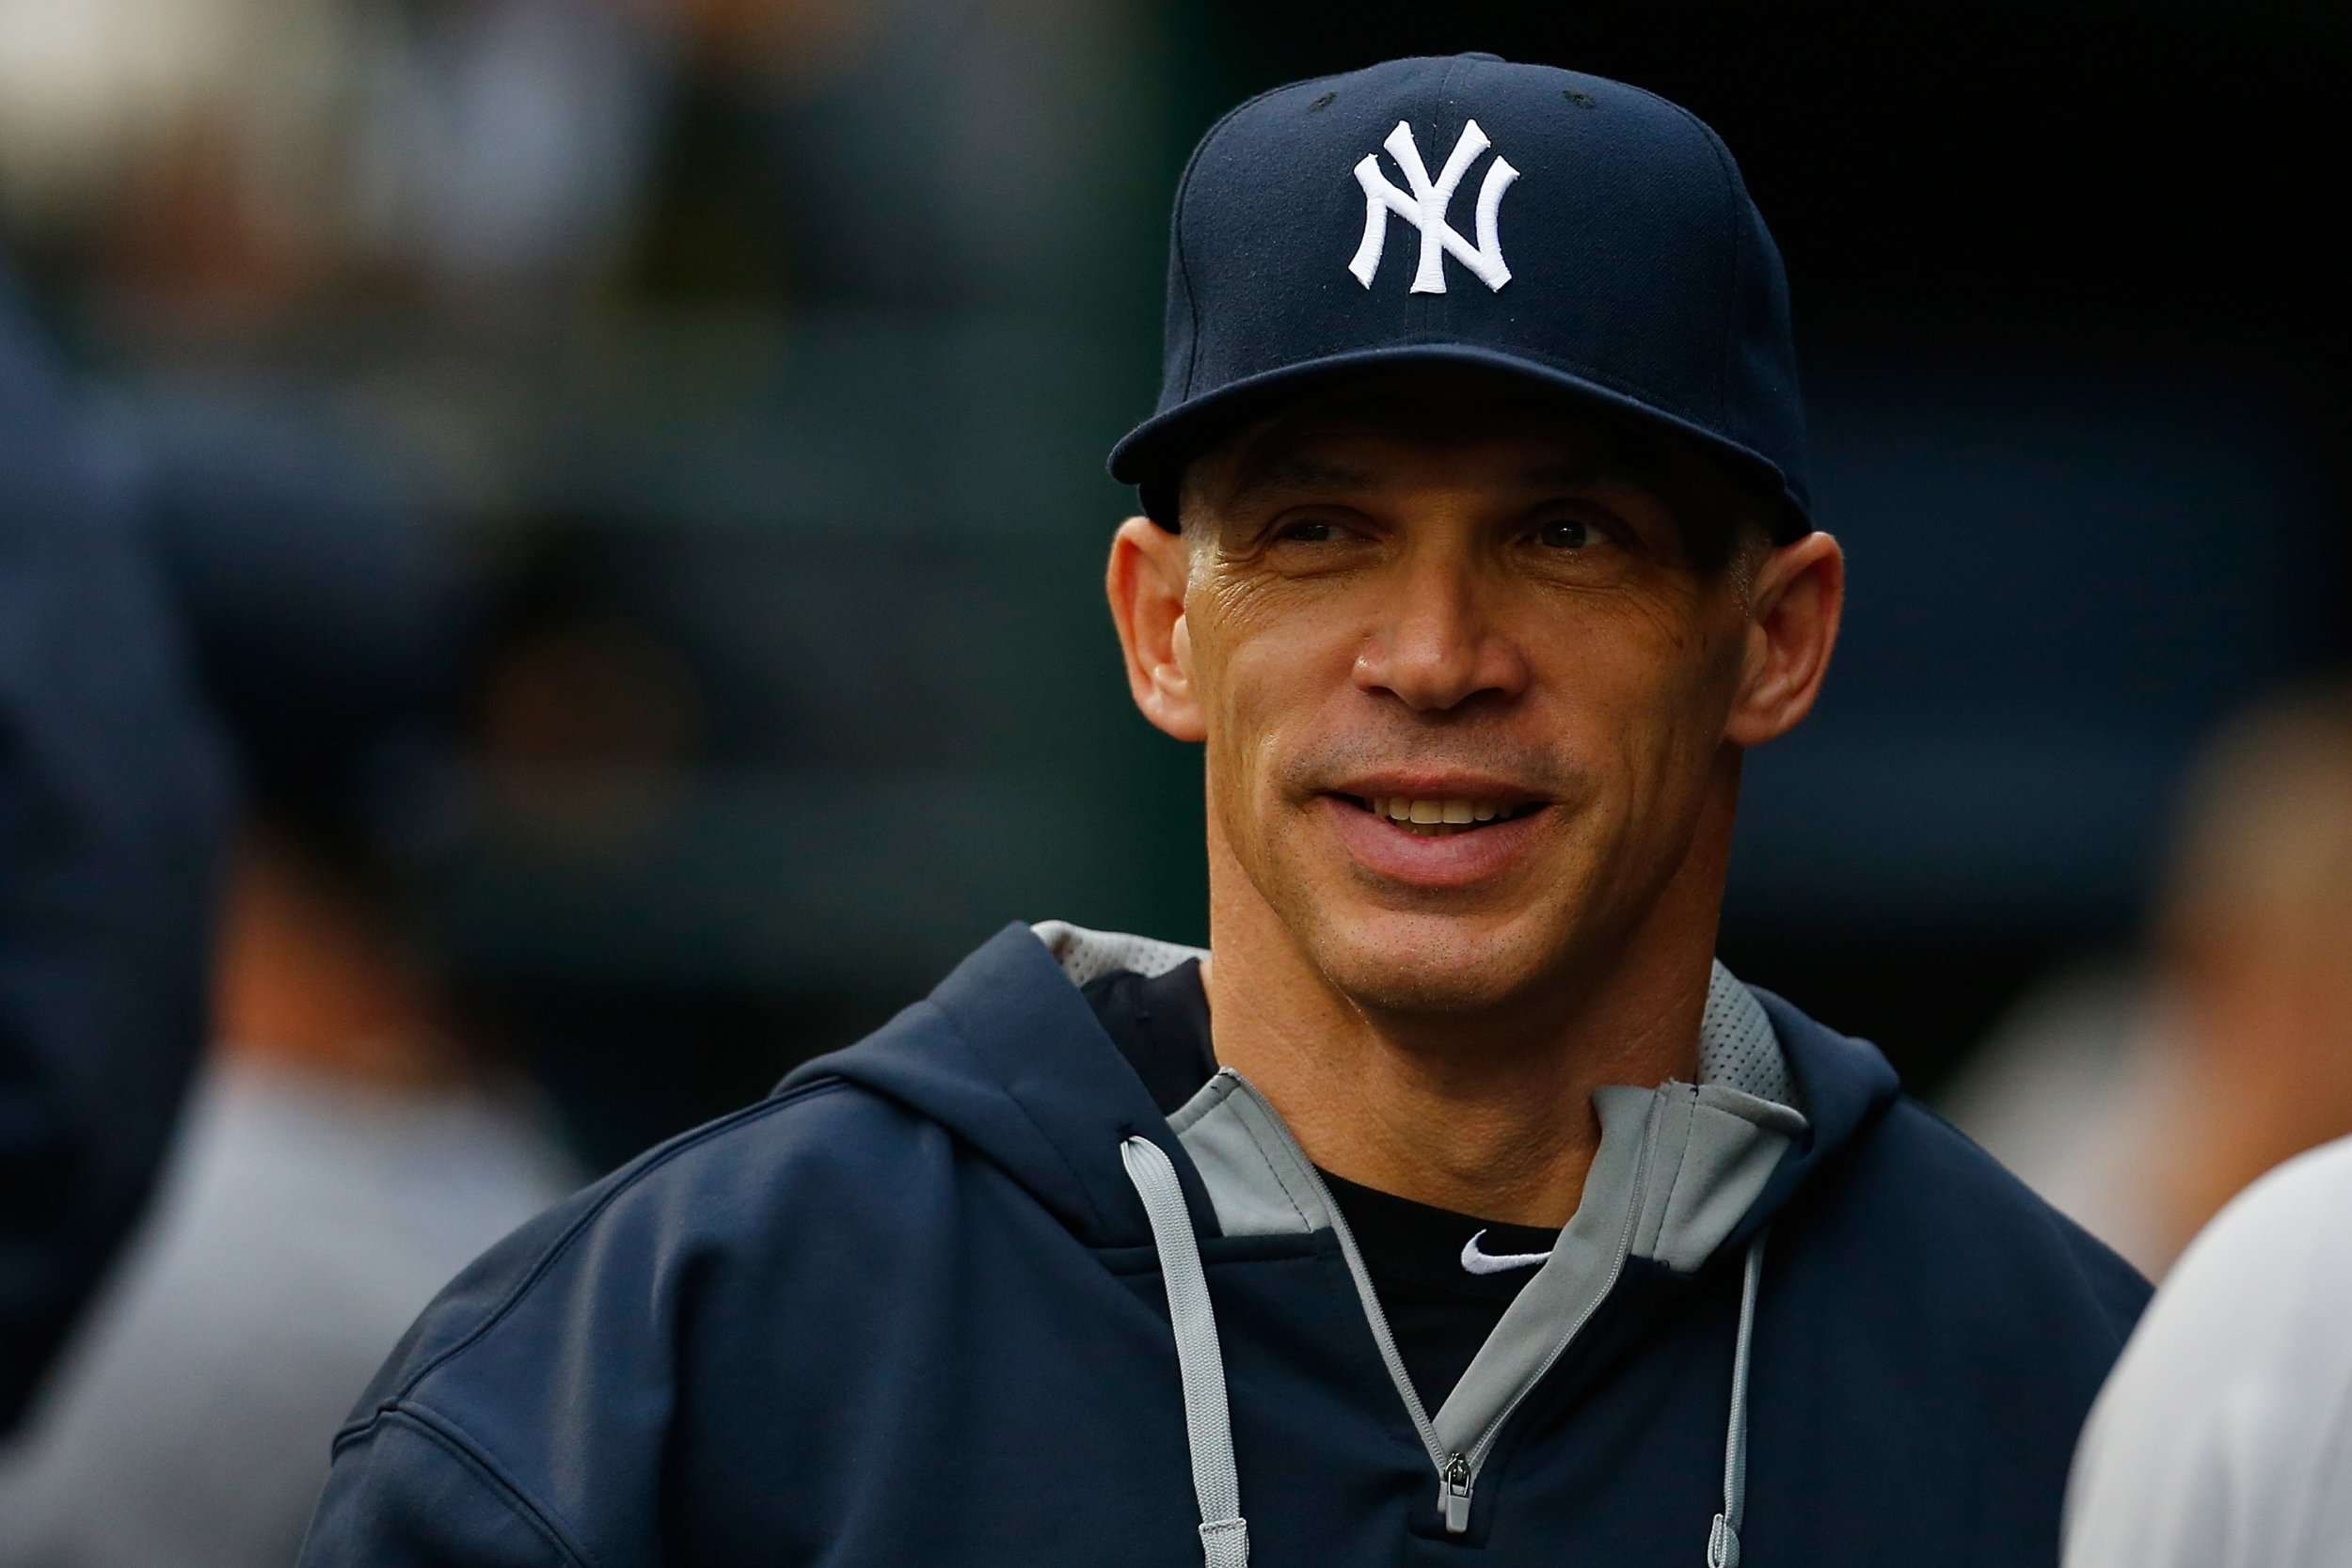 Yankees manager Joe Girardi.